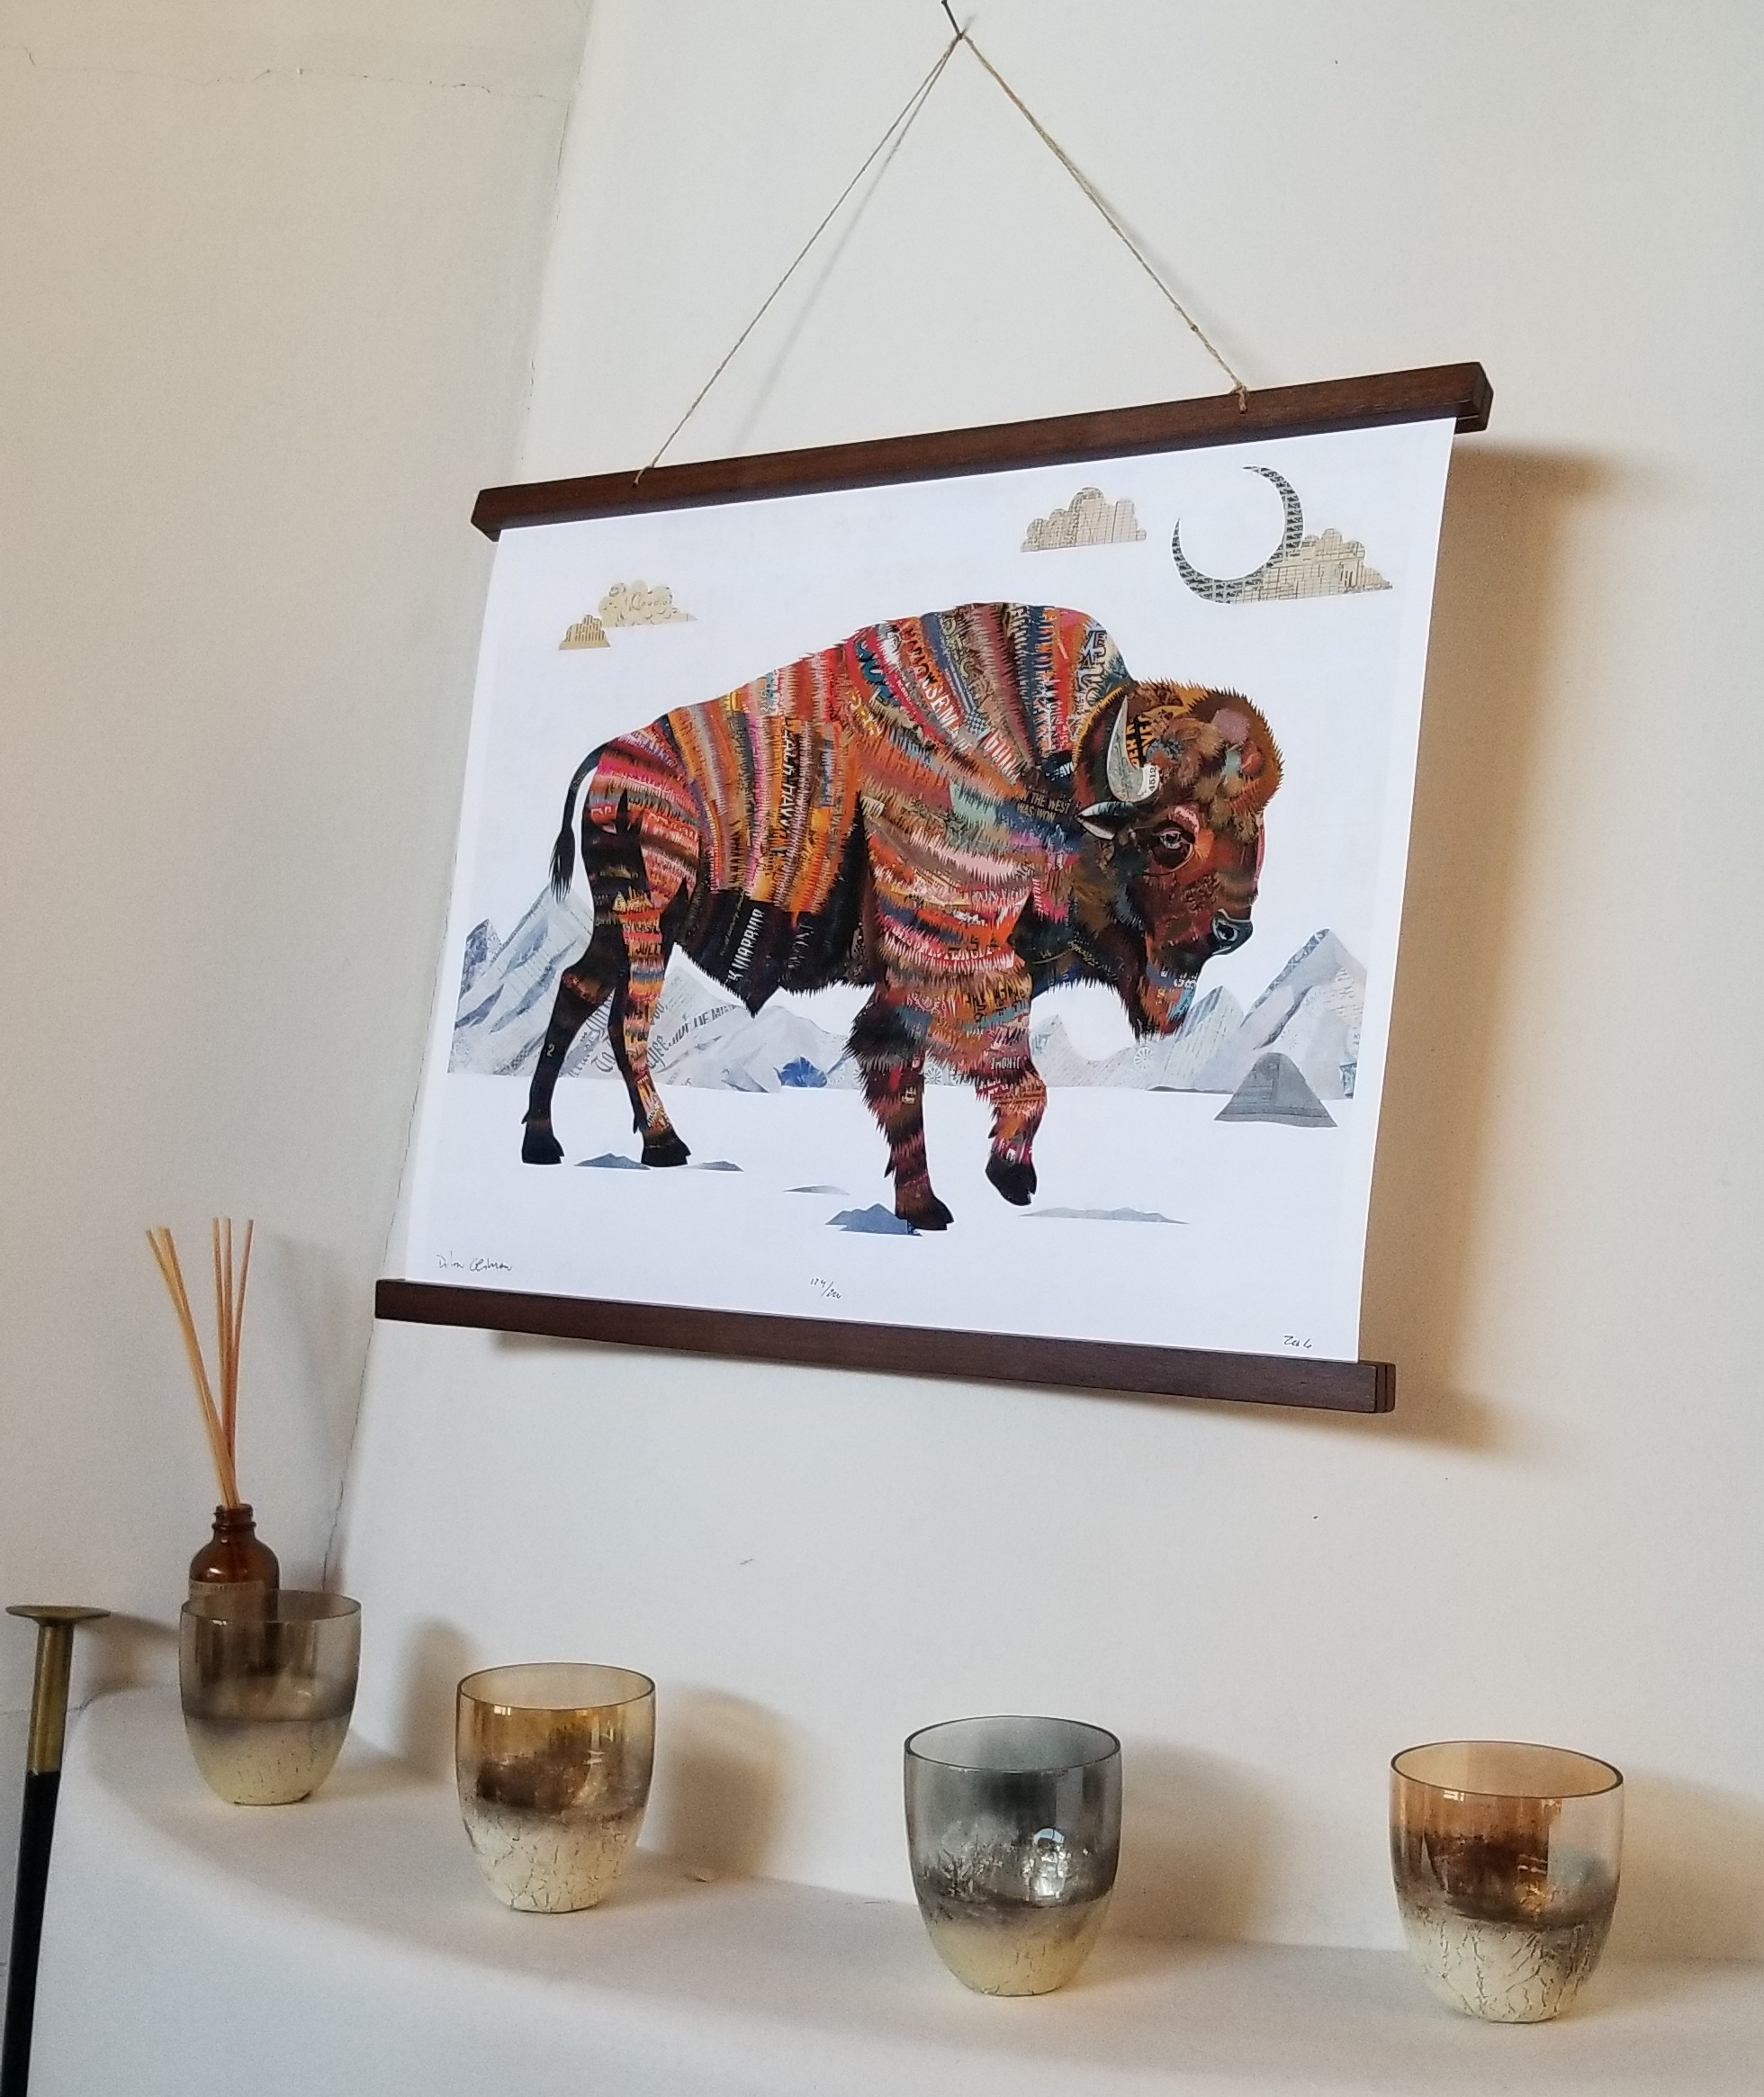 Dolan's buffalo that graces our home.